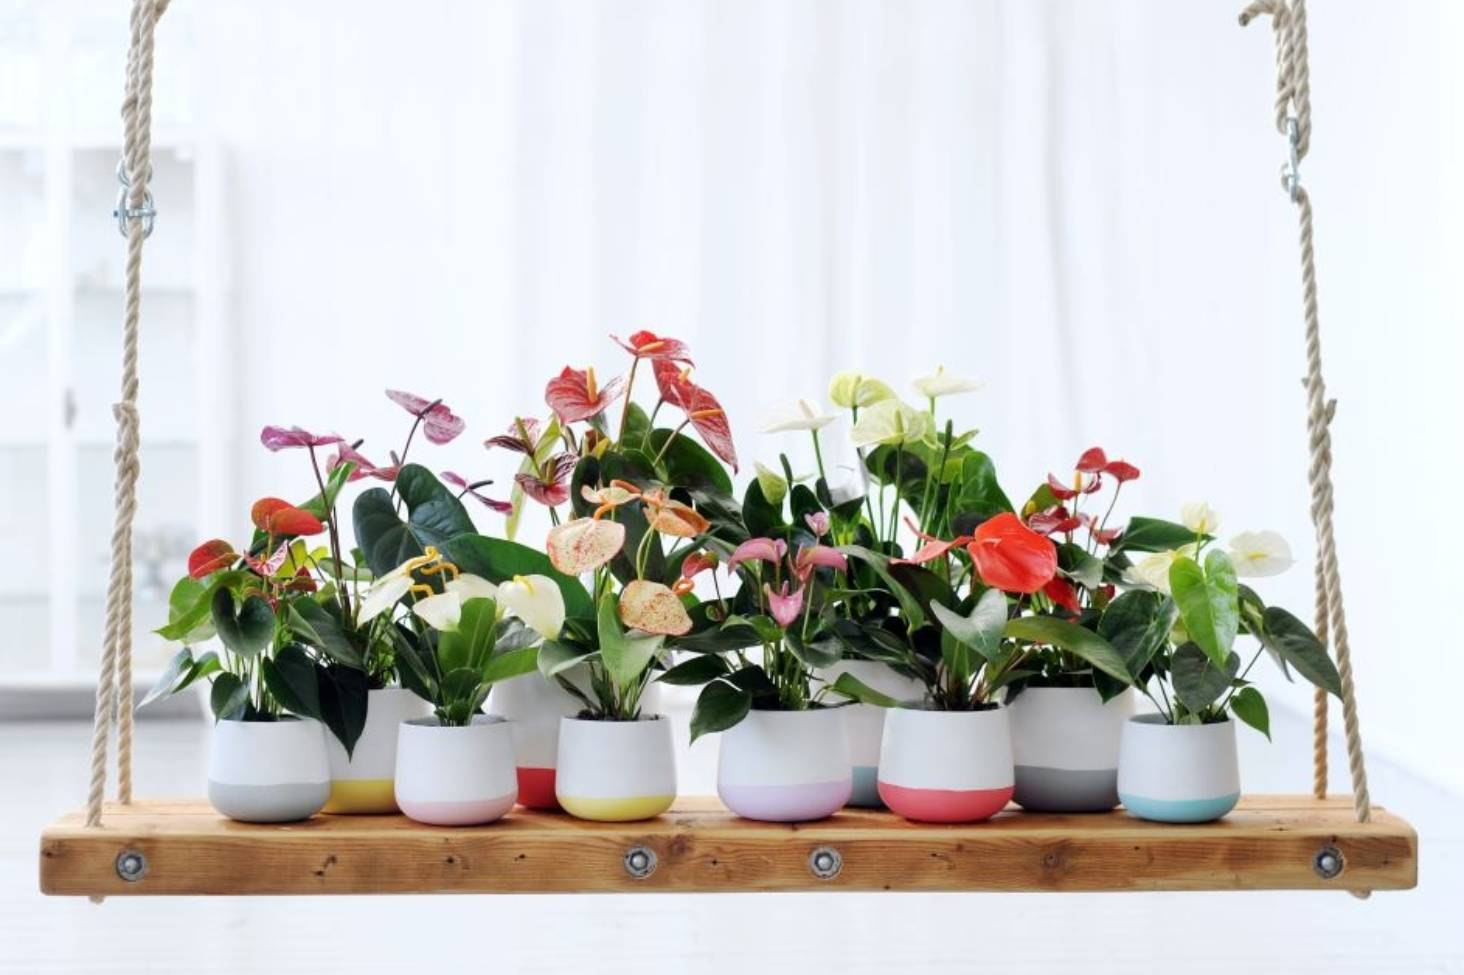 6 houseplants to clean your air, lift your mood and improve